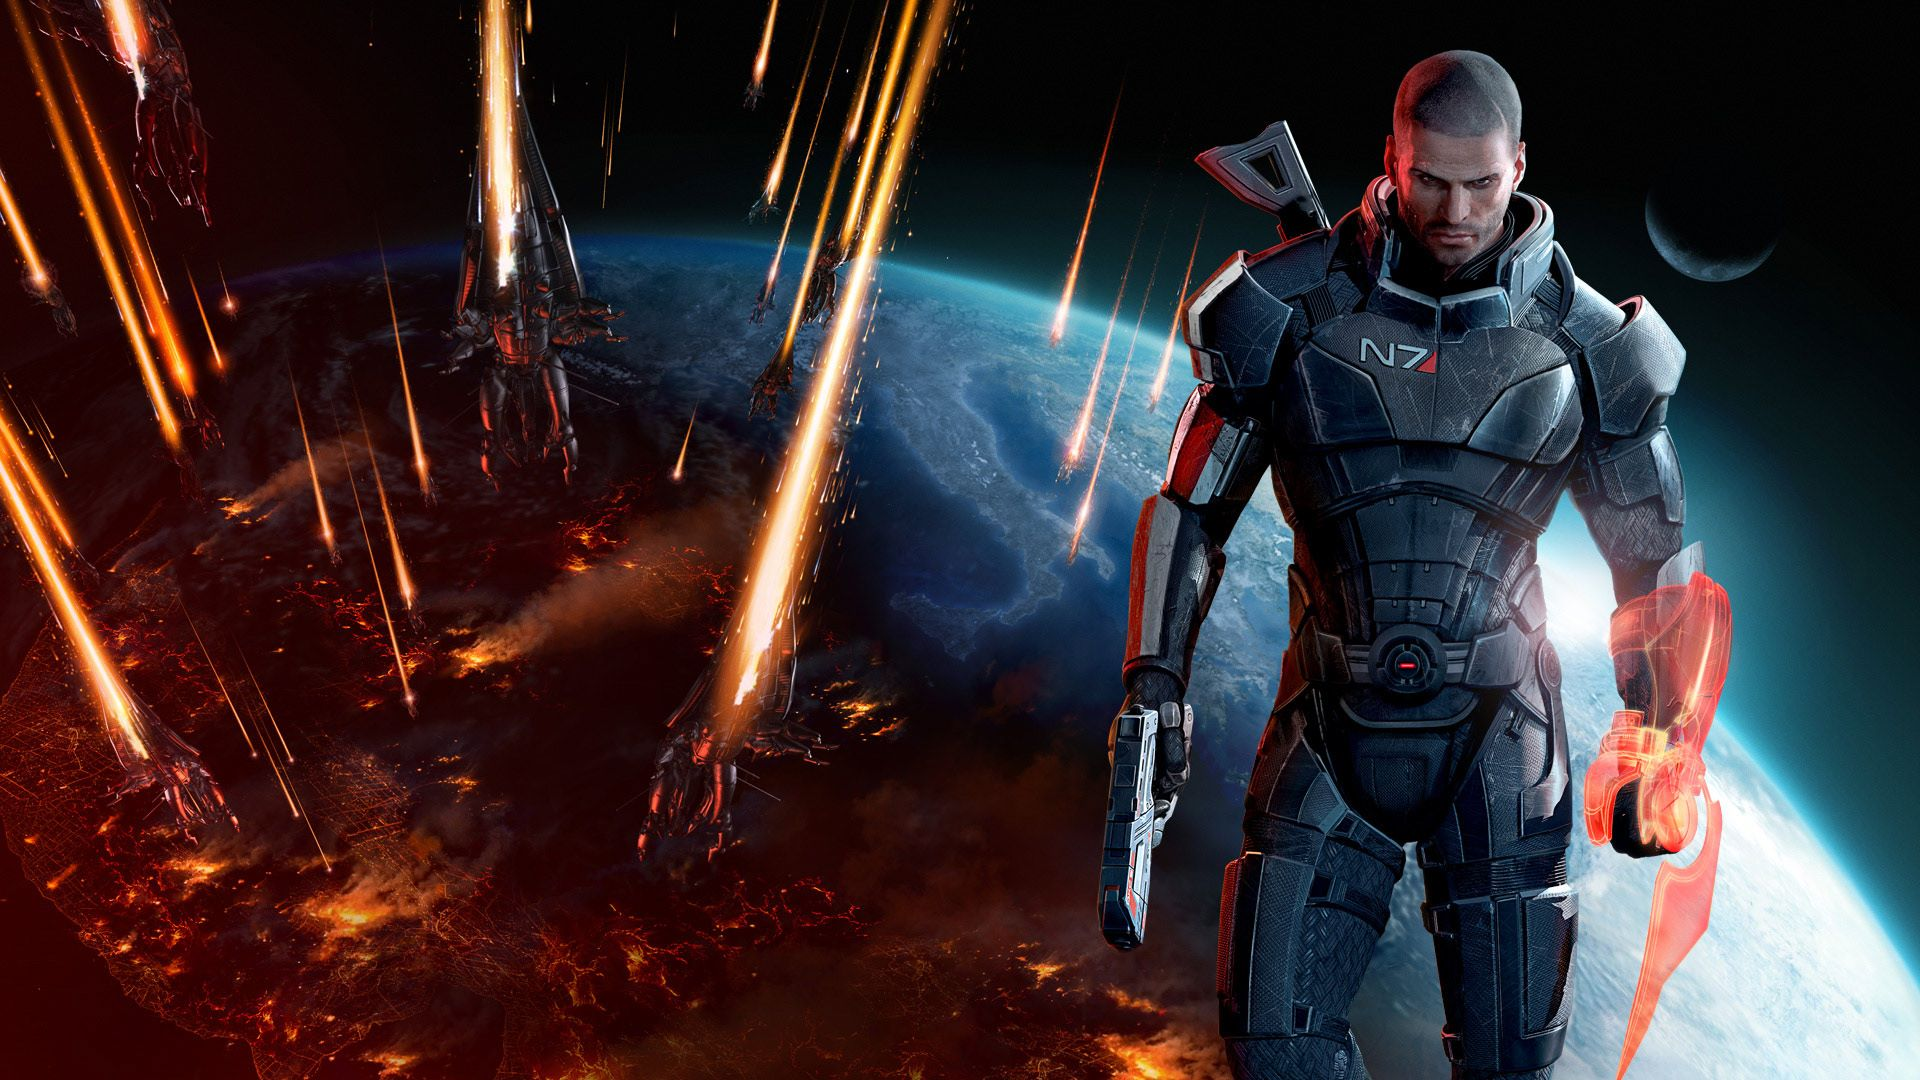 Mass Effect 3 Commander Shepard